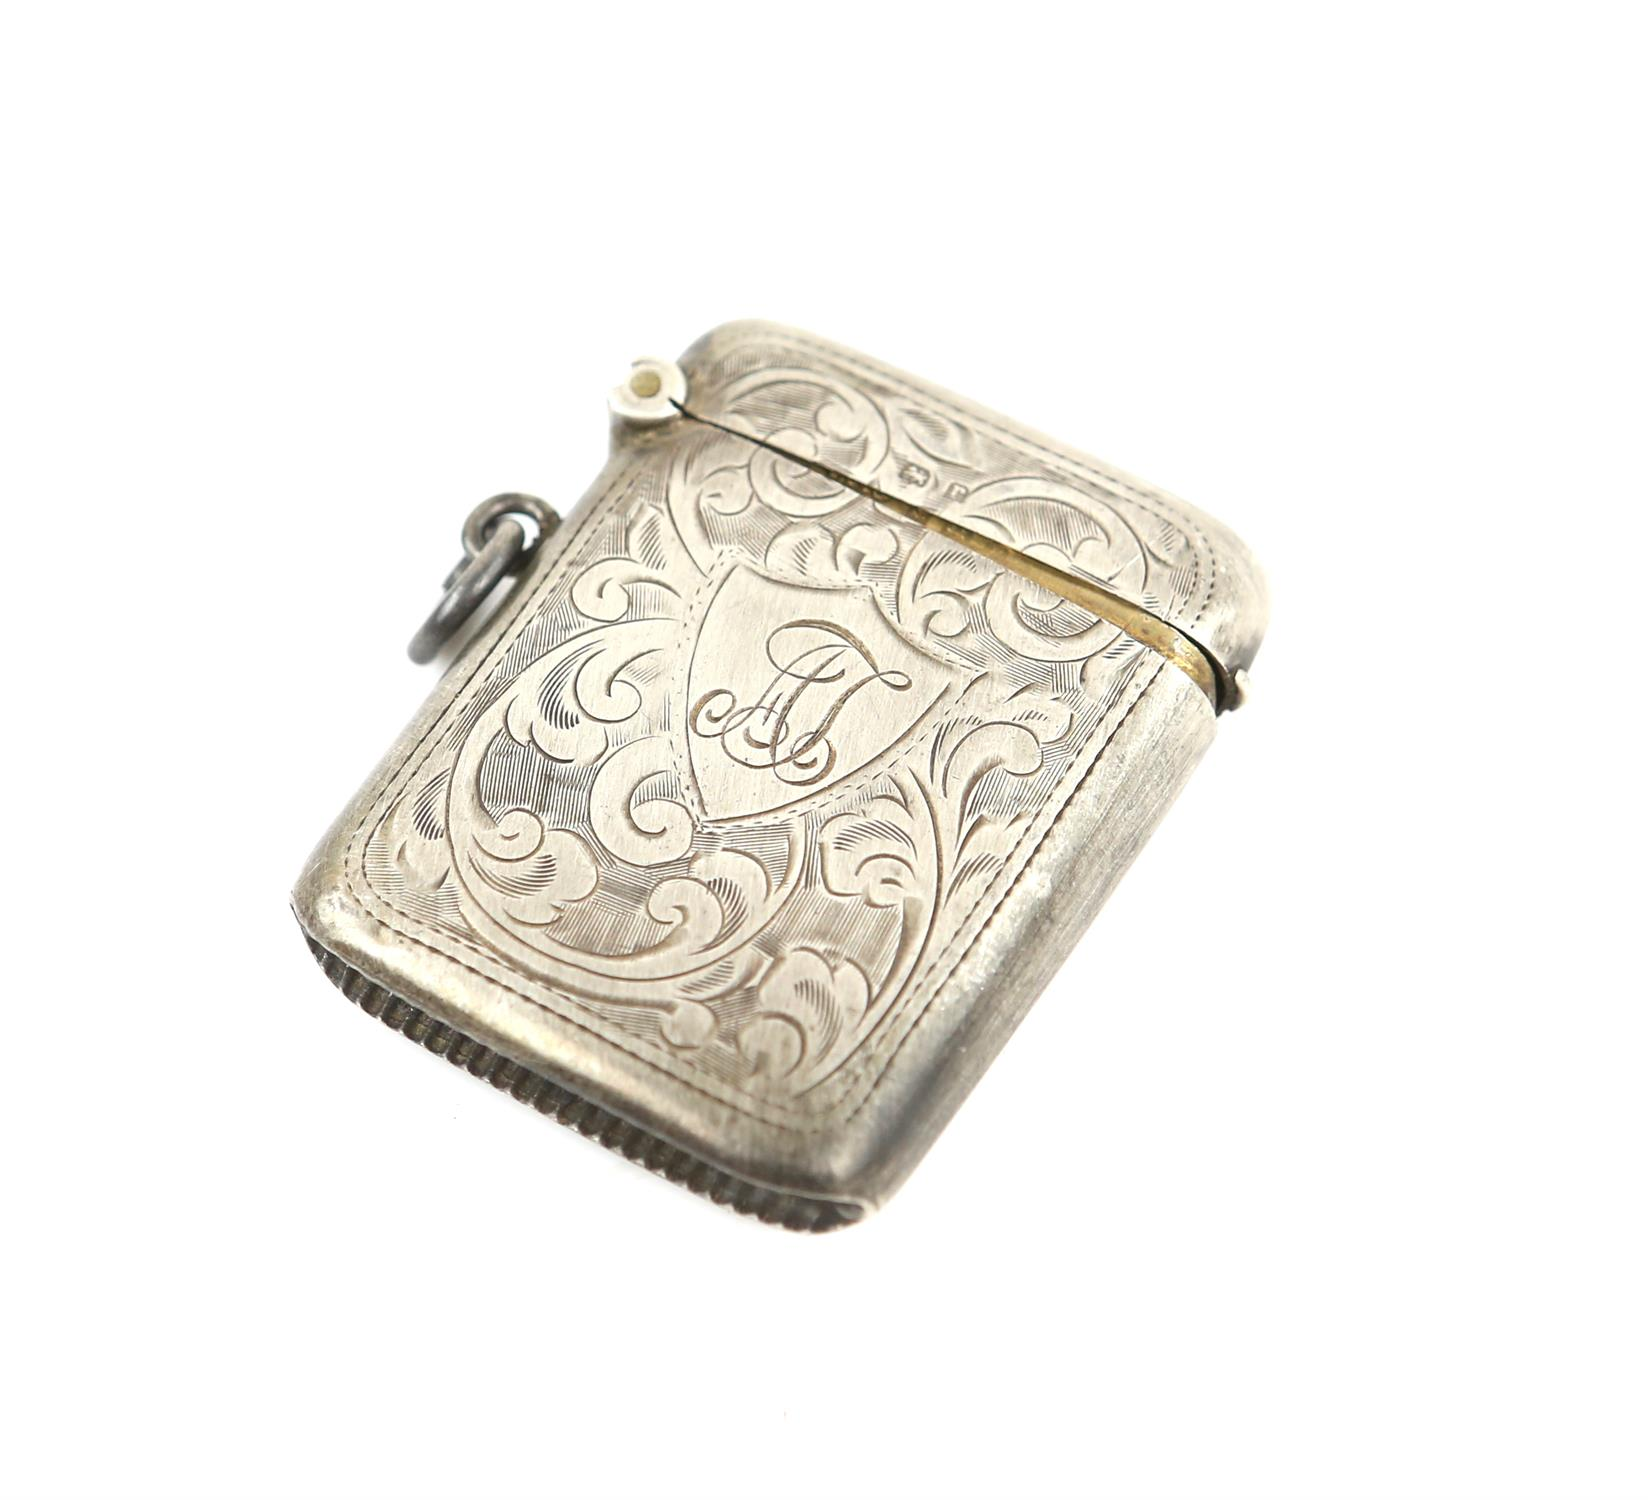 American sterling silver pepperette with floral embossed ddecoration, marked Sterling, - Image 11 of 18